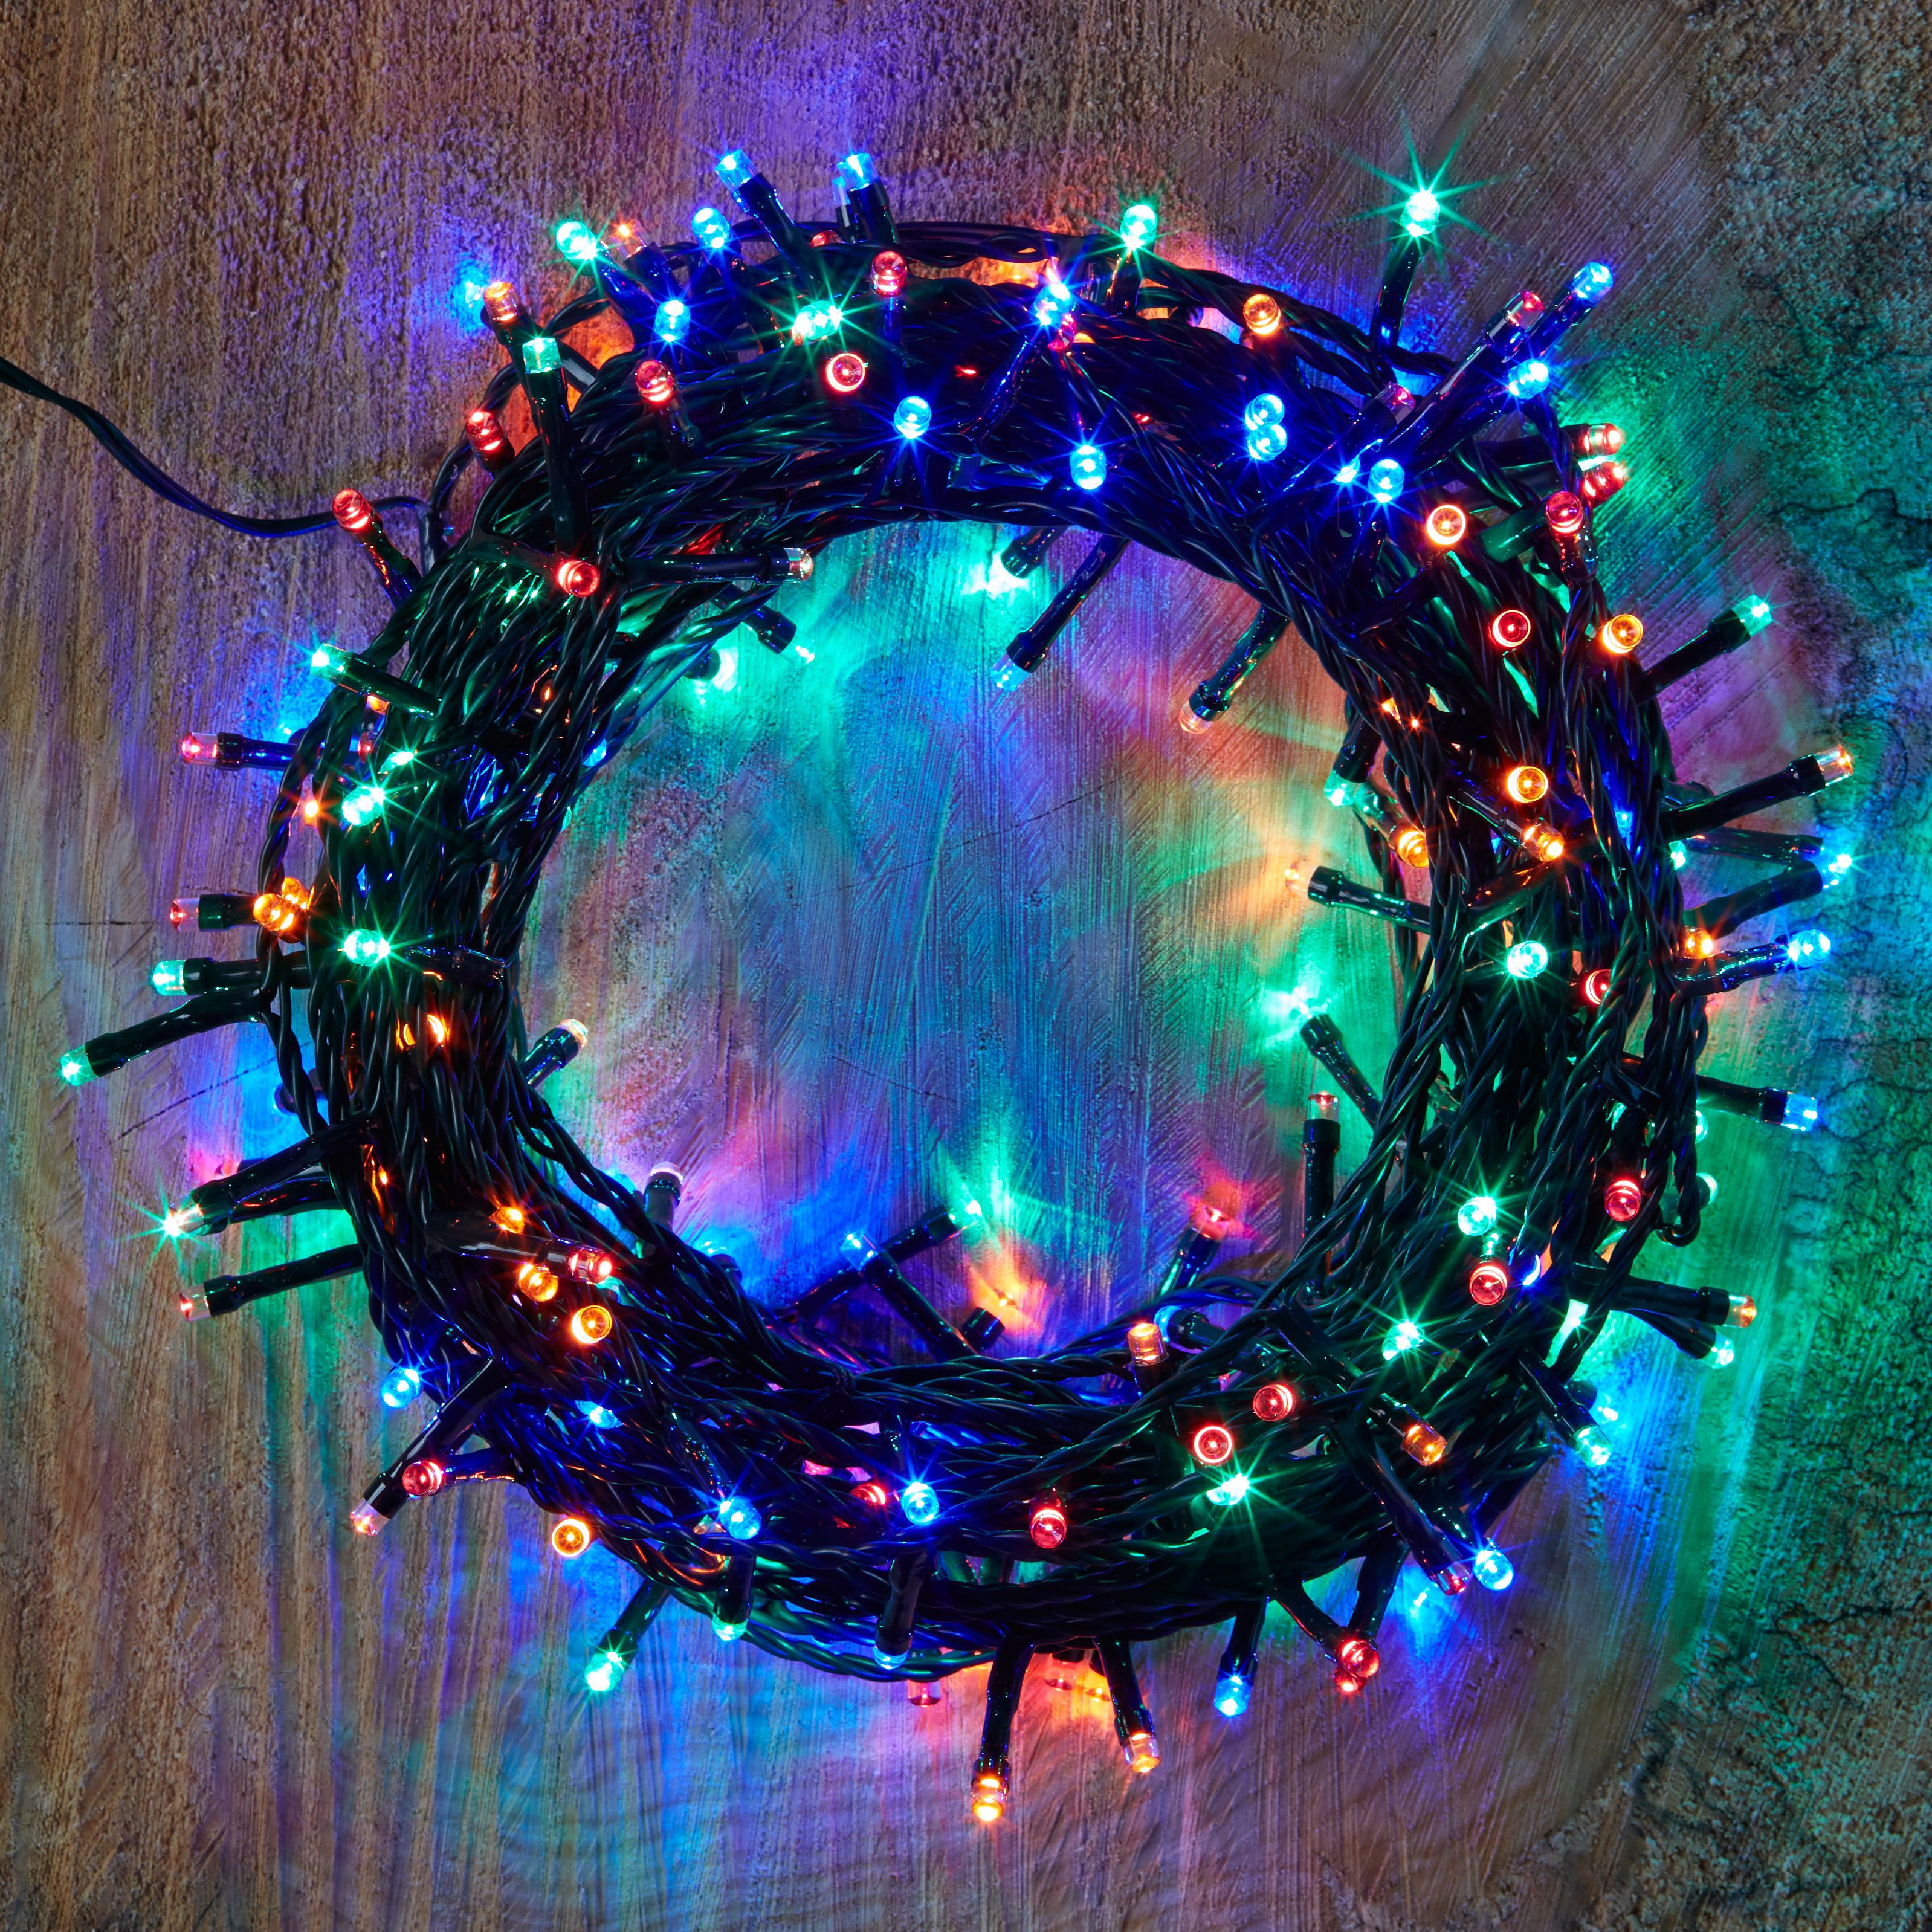 240 Multicolour LED String Lights Departments DIY at B&Q